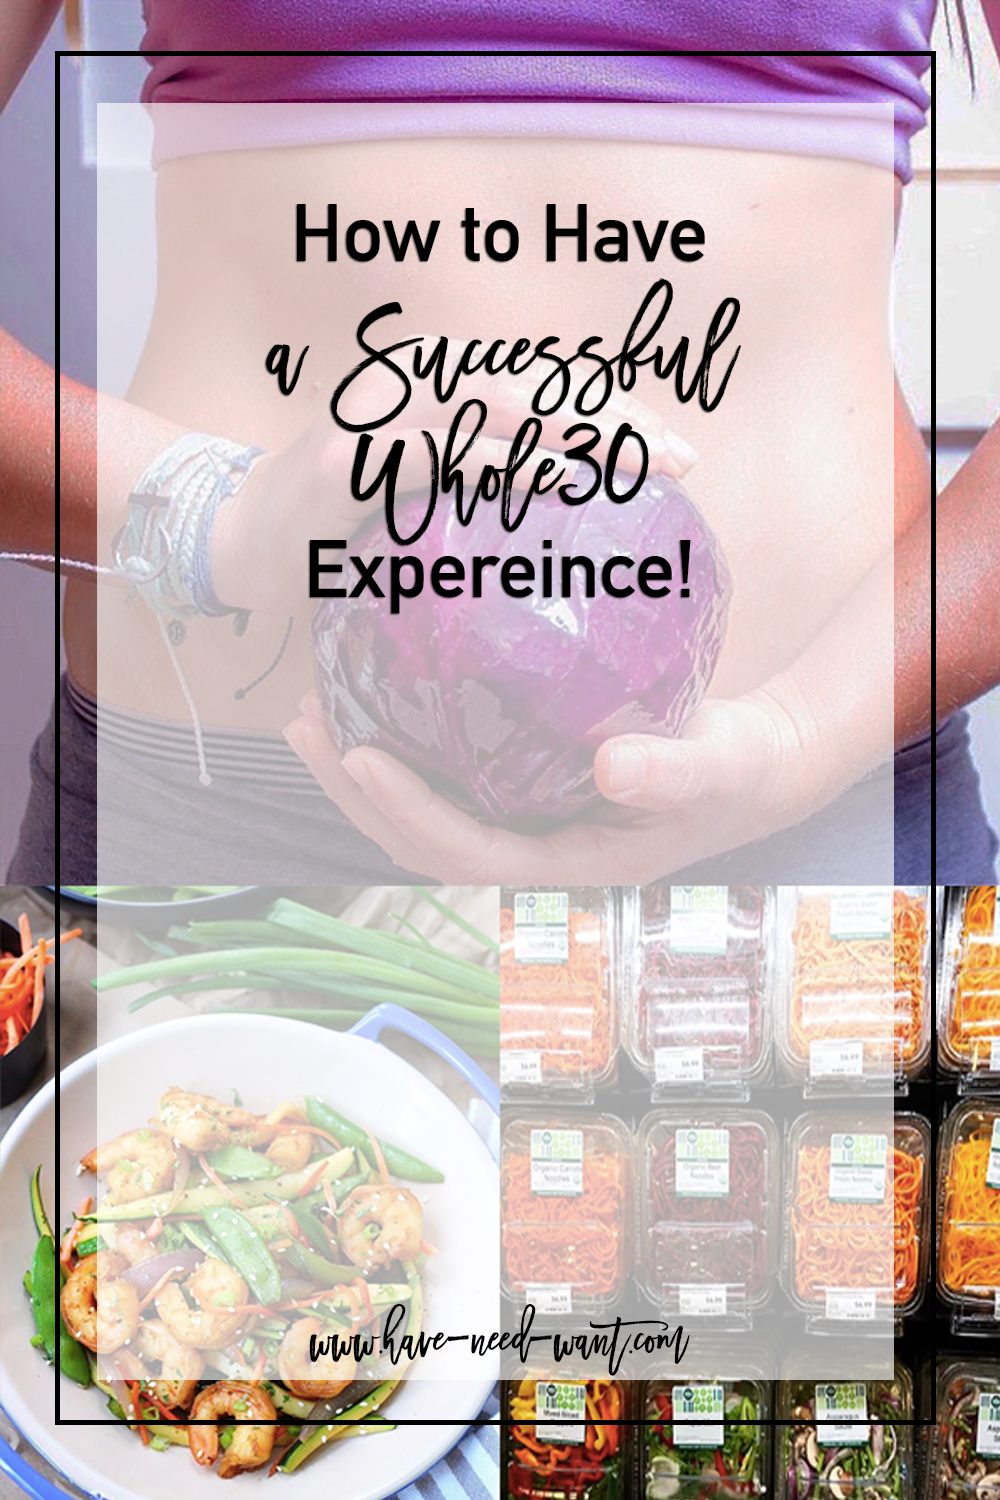 How to have a successful Whole30 experience! Click on the pic to read the post!! | Have Need Want  #Whole30 #Whole30January #HealthyLifestyle #HealthyEating #CleanEating